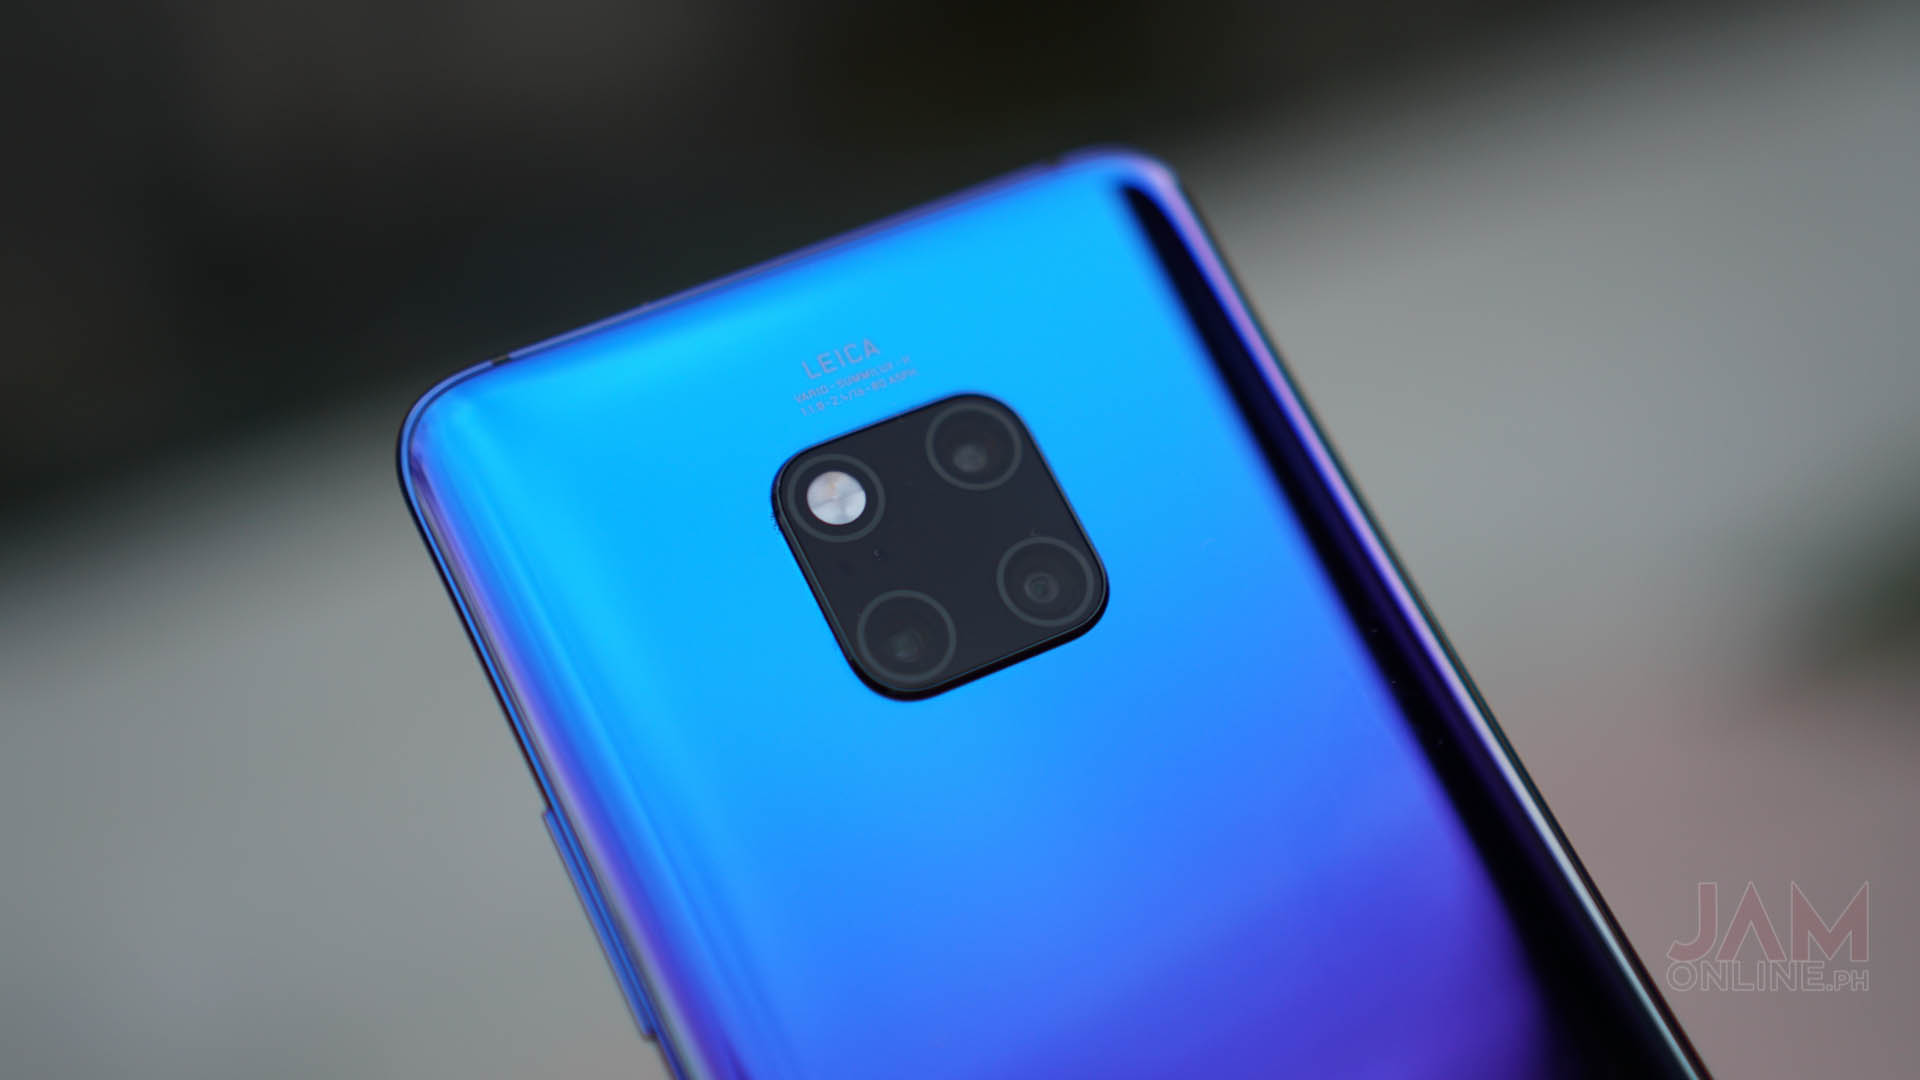 Huawei Mate 20 Pro Camera Sample Gallery Jam Online Philippines